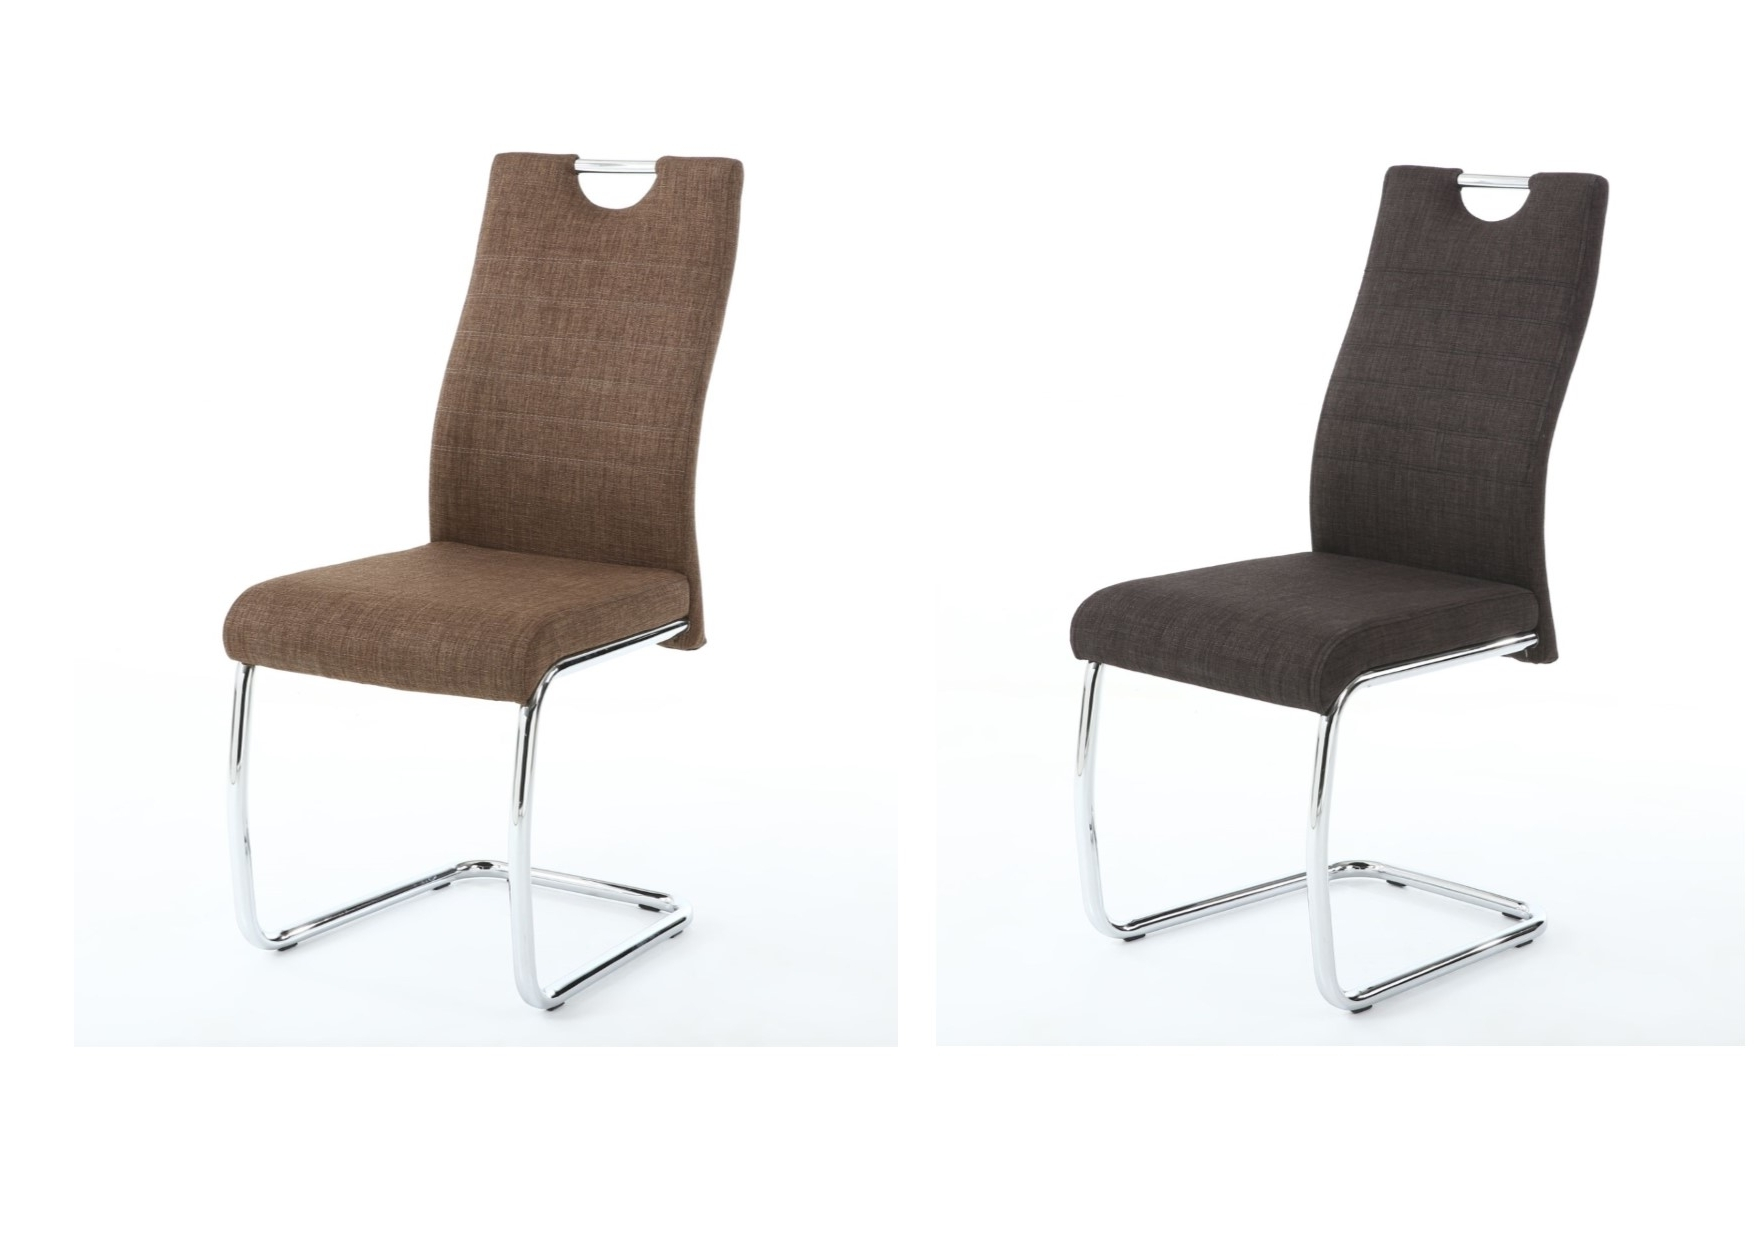 Charcoal Dining Chairs With Regard To Well Known 2X Talia Fabric Dining Chairs – Charcoal, Cinnamon & Cantilever (View 7 of 20)